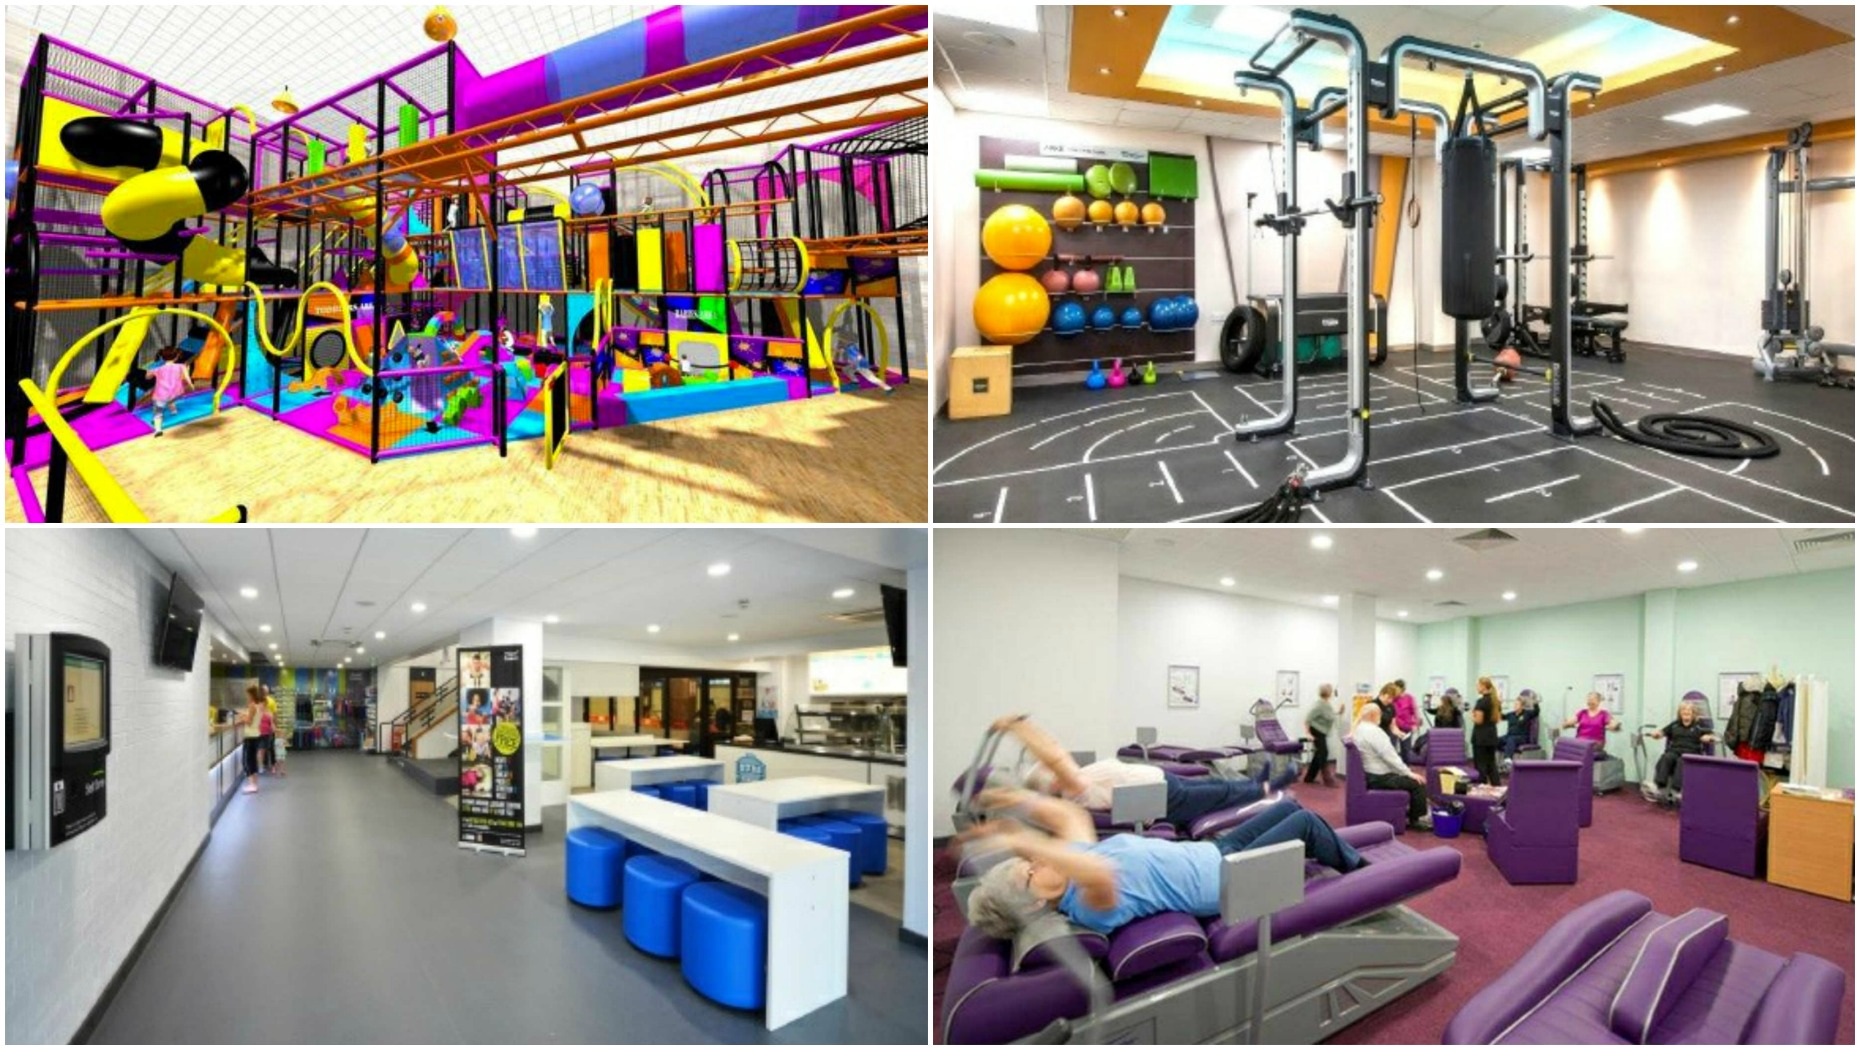 leisure centre Operated by freedom leisure, stafford leisure centre has activities for everyone a huge gym, regular fitness classes, swimming, squash, gymnastics and a multi-purpose sports hall.